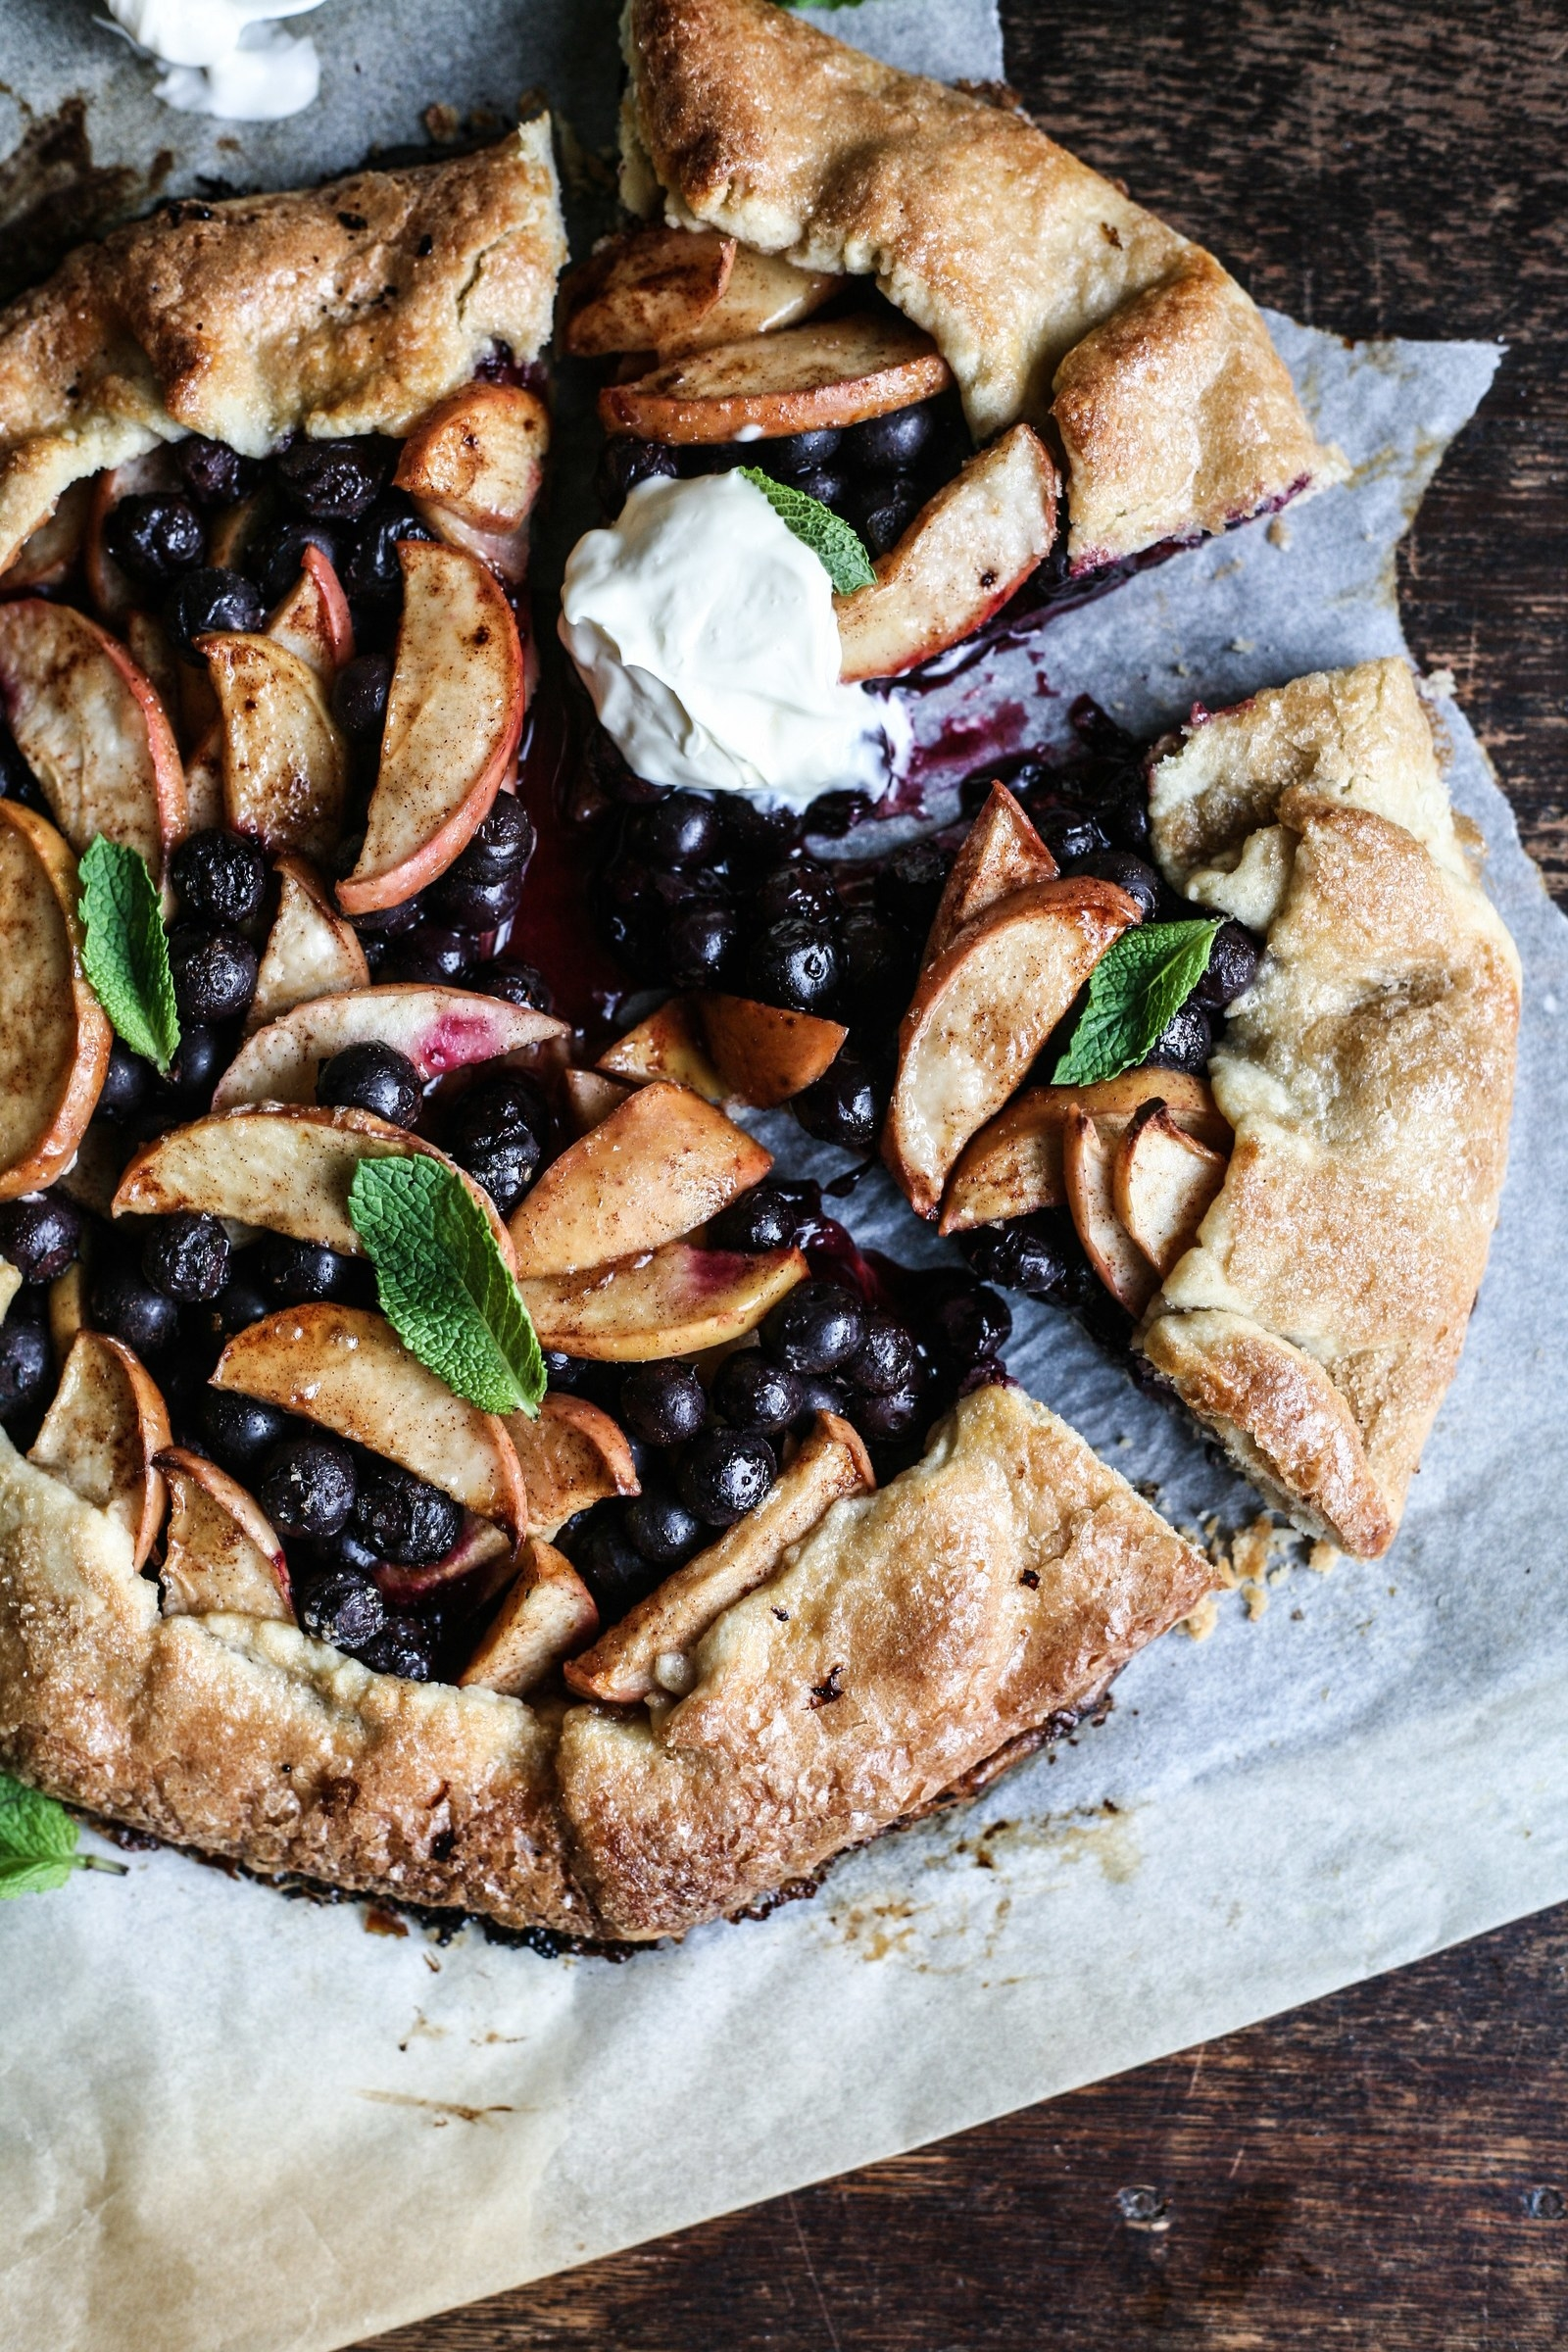 20 Galettes To Make For Breakfast, Lunch, Dinner, And Dessert